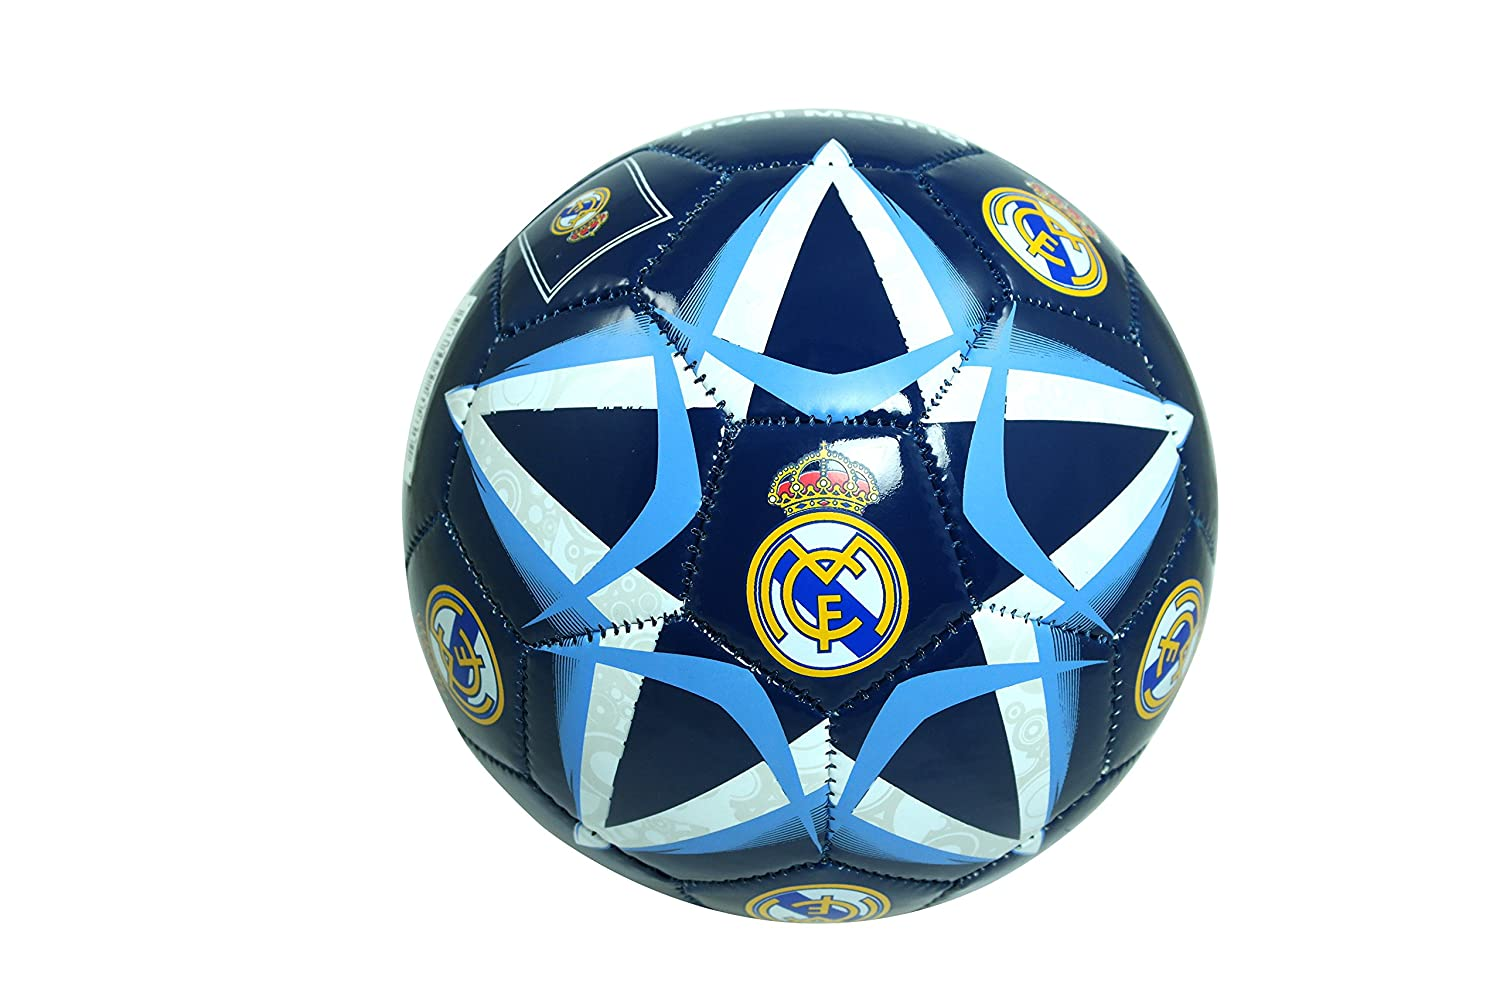 Real Madrid c.f. Authentic Official Licensedサッカーボールサイズ2が- 02   B06Y42CN8N